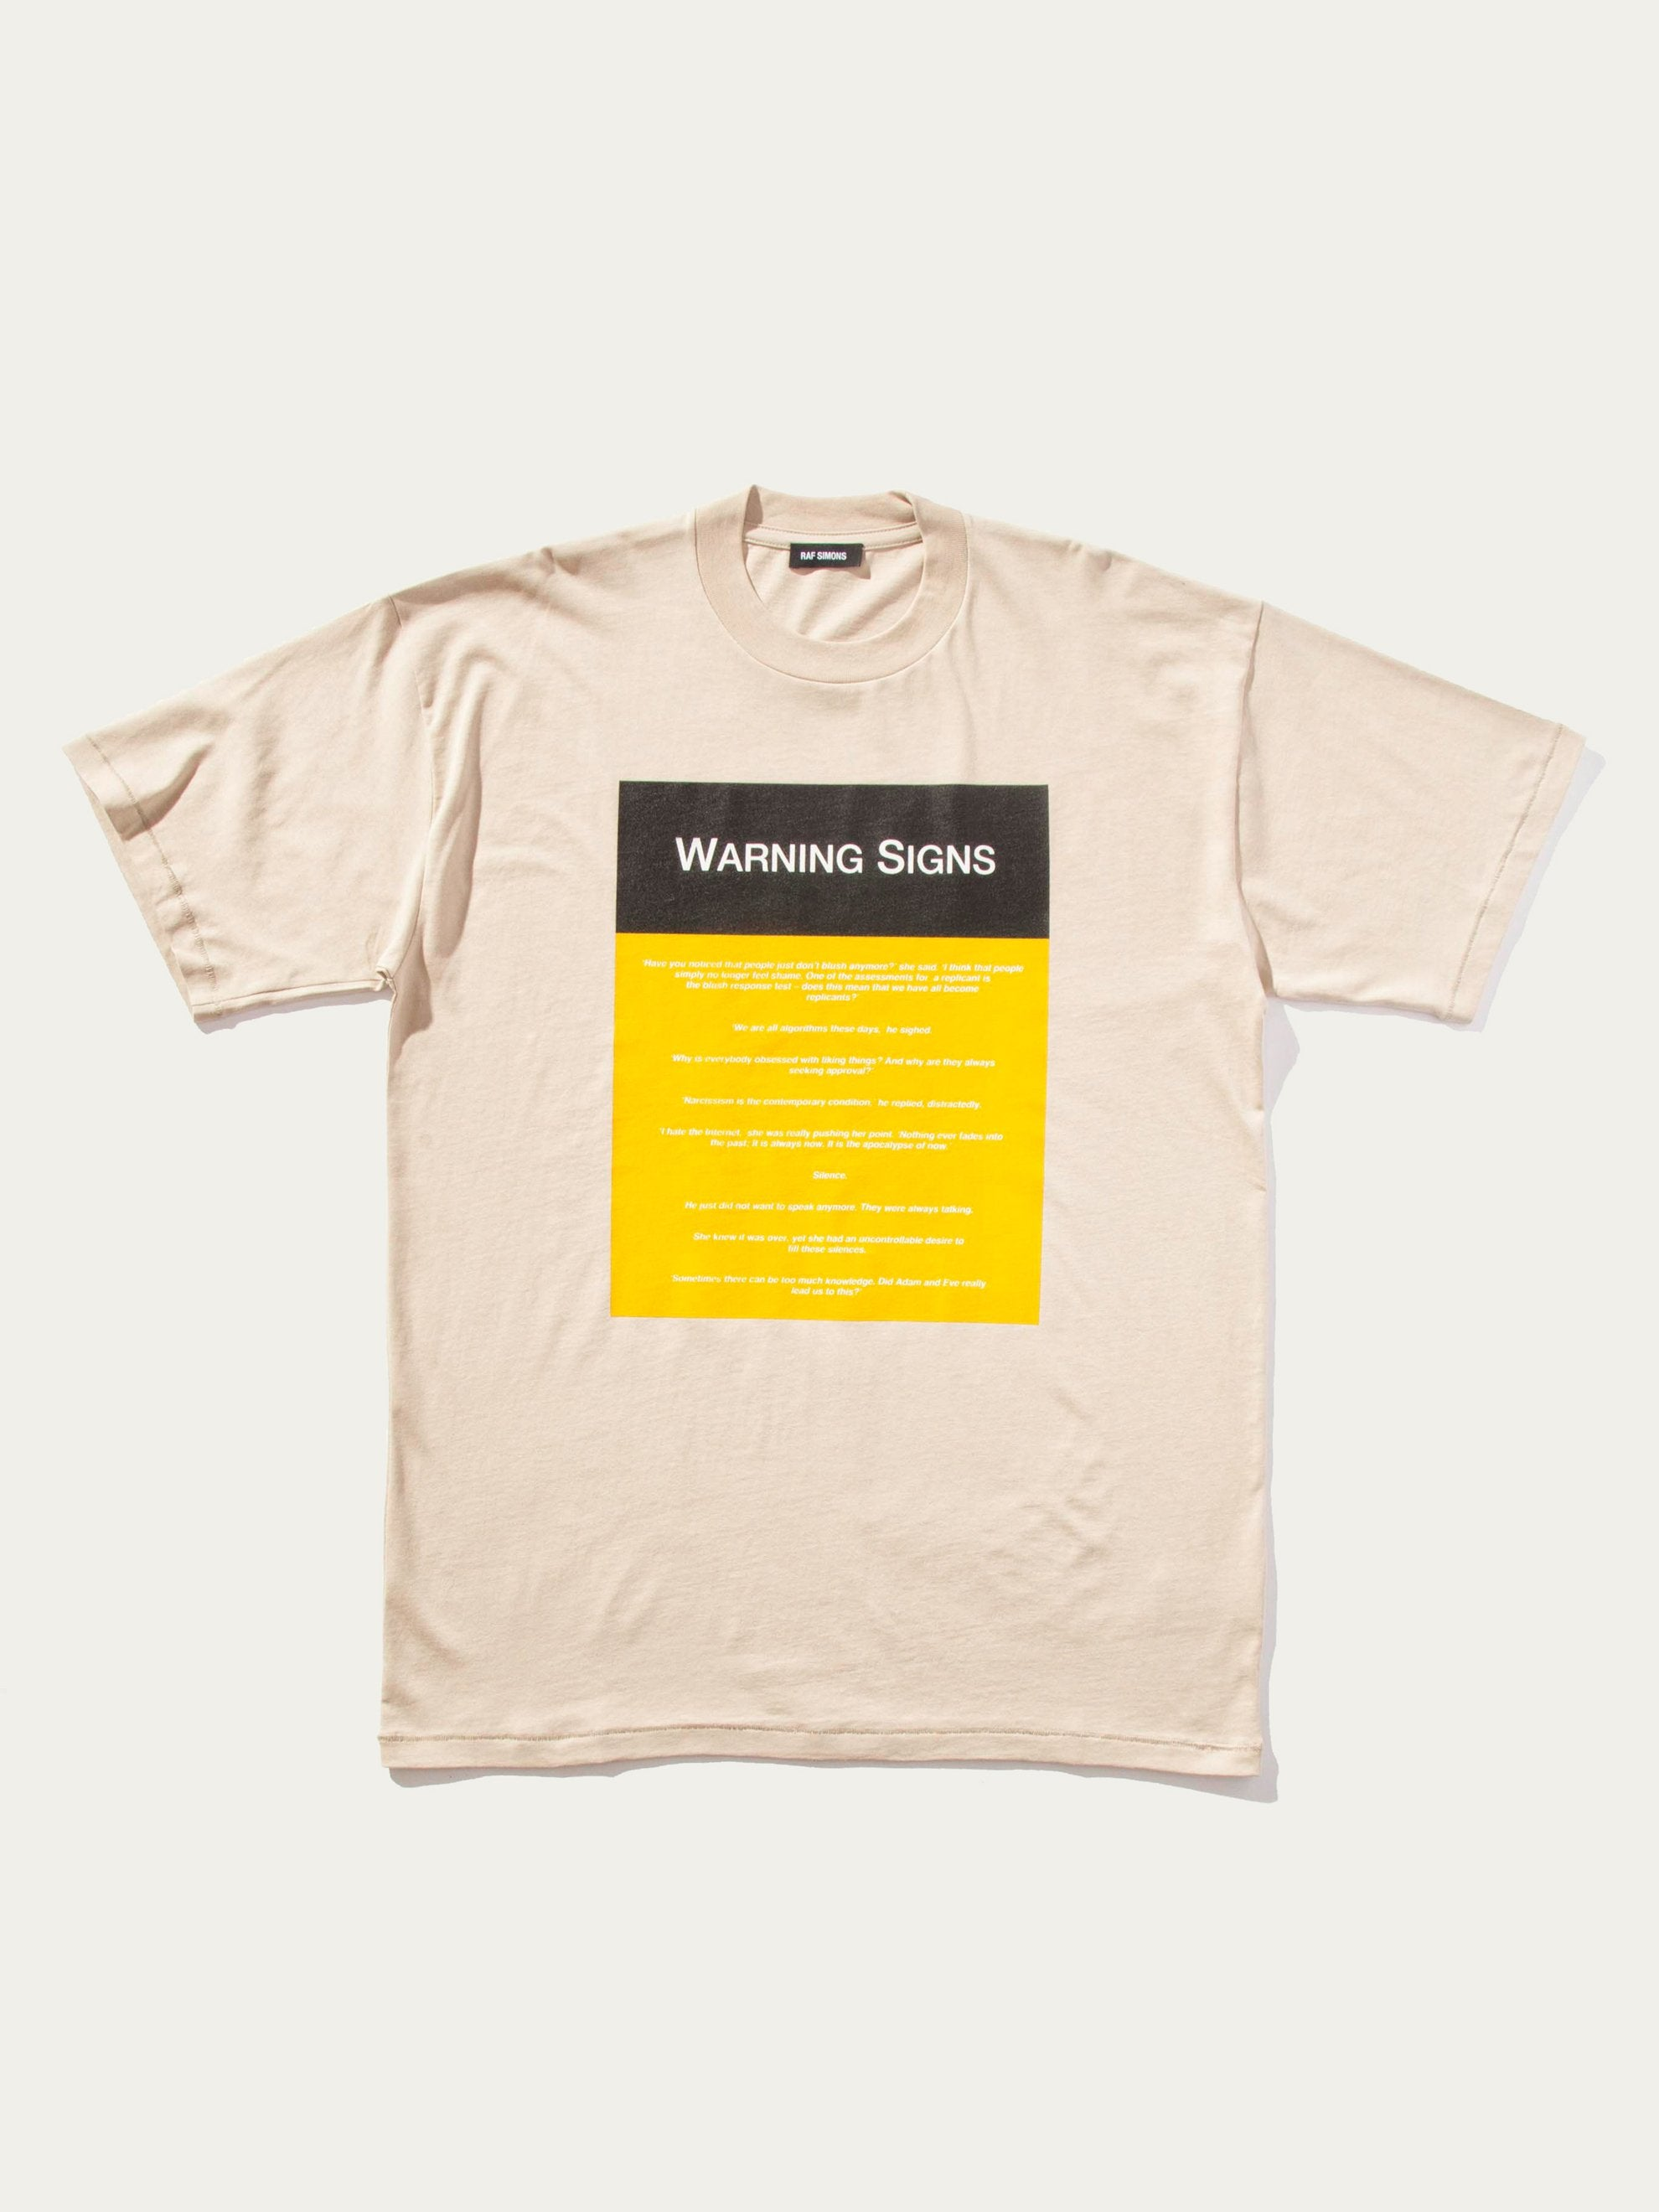 Warning Signs T-Shirt (Big Fit)